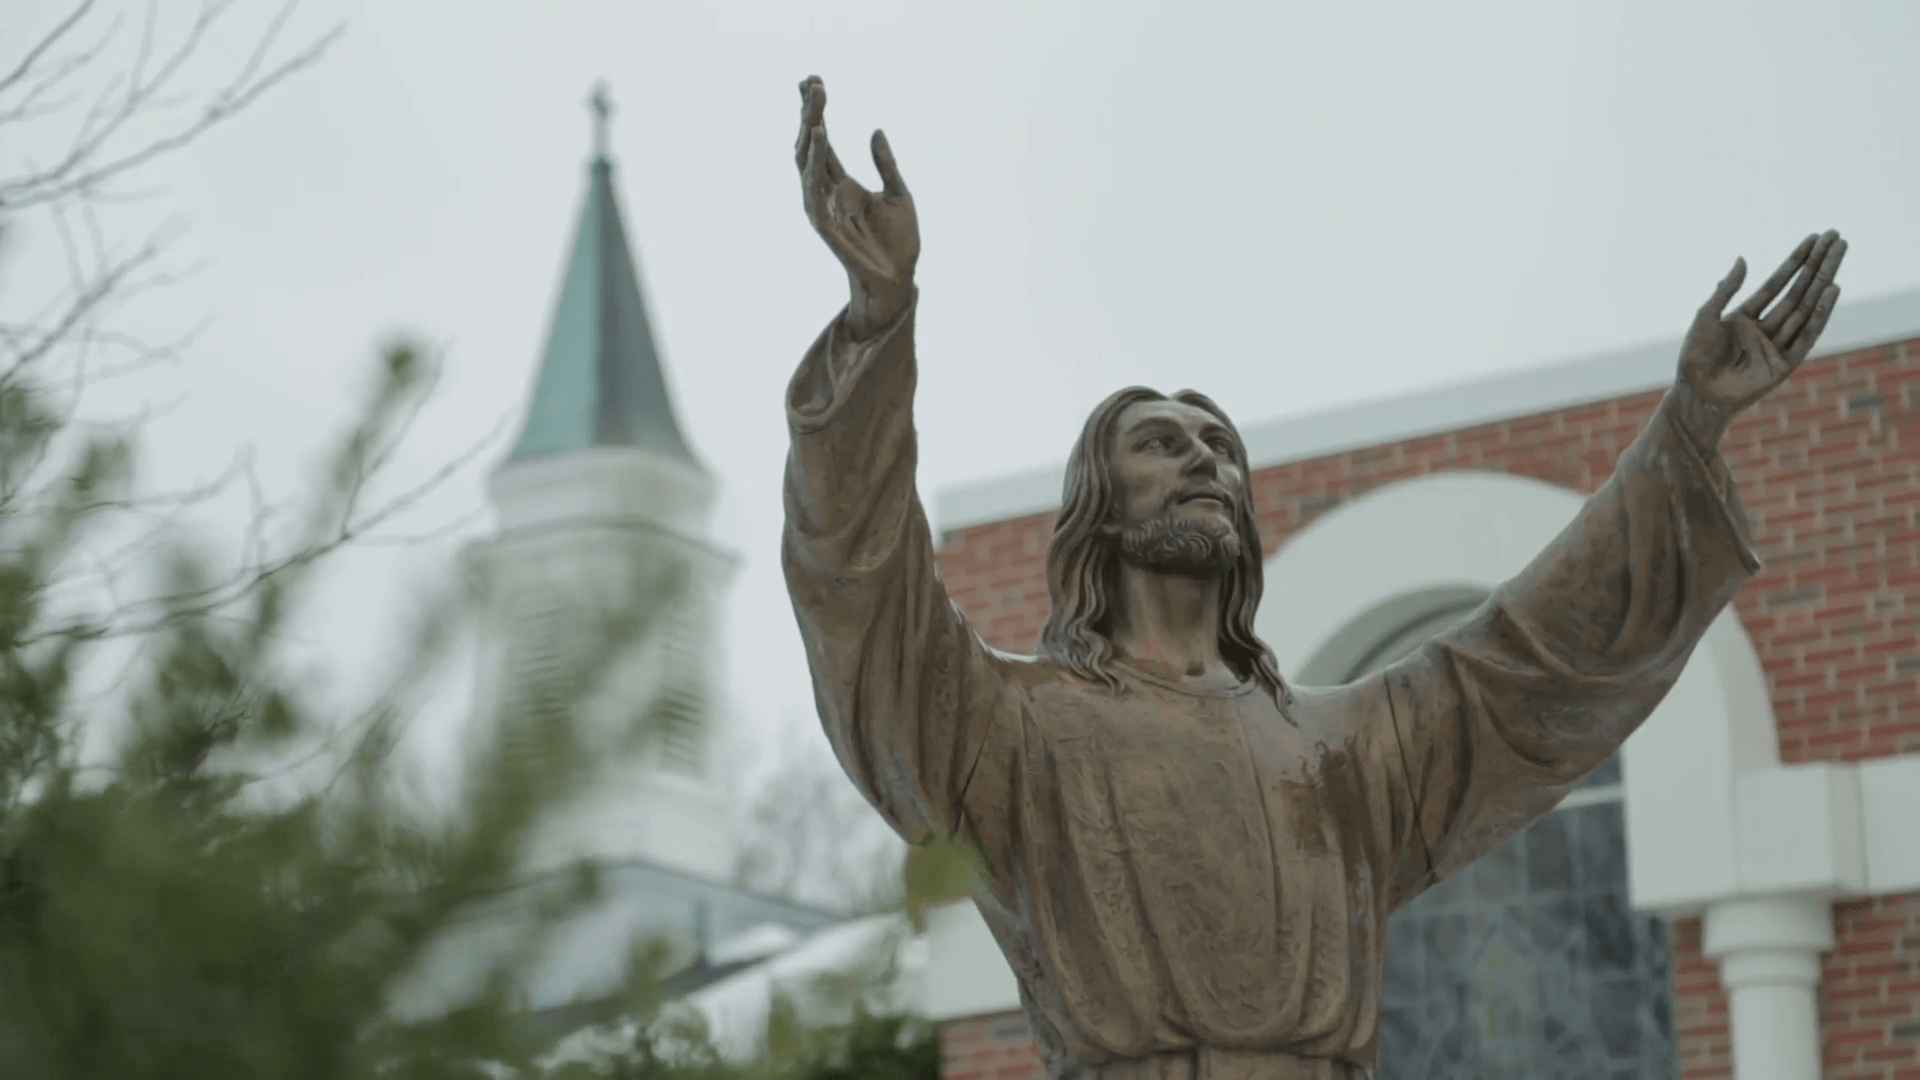 Holy Cross Theology Professor Says Jesus Was a Drag King with Queer Desires